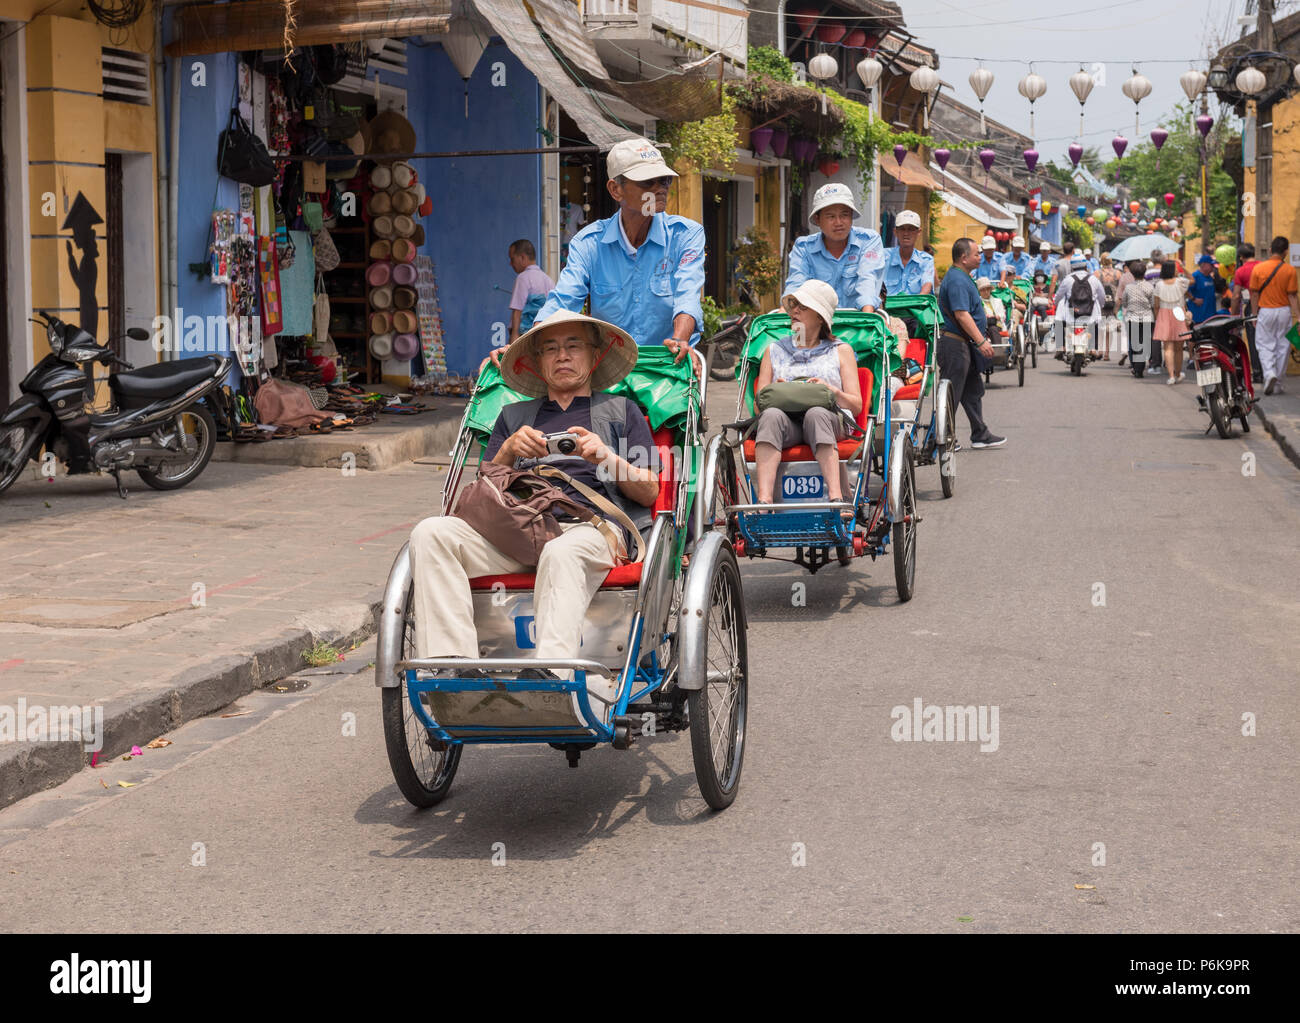 Hoi An, Vietnam--March 23, 2016. Tourists explore the city Hoi An on the while riding pedicabs on a busy shopping street. - Stock Image